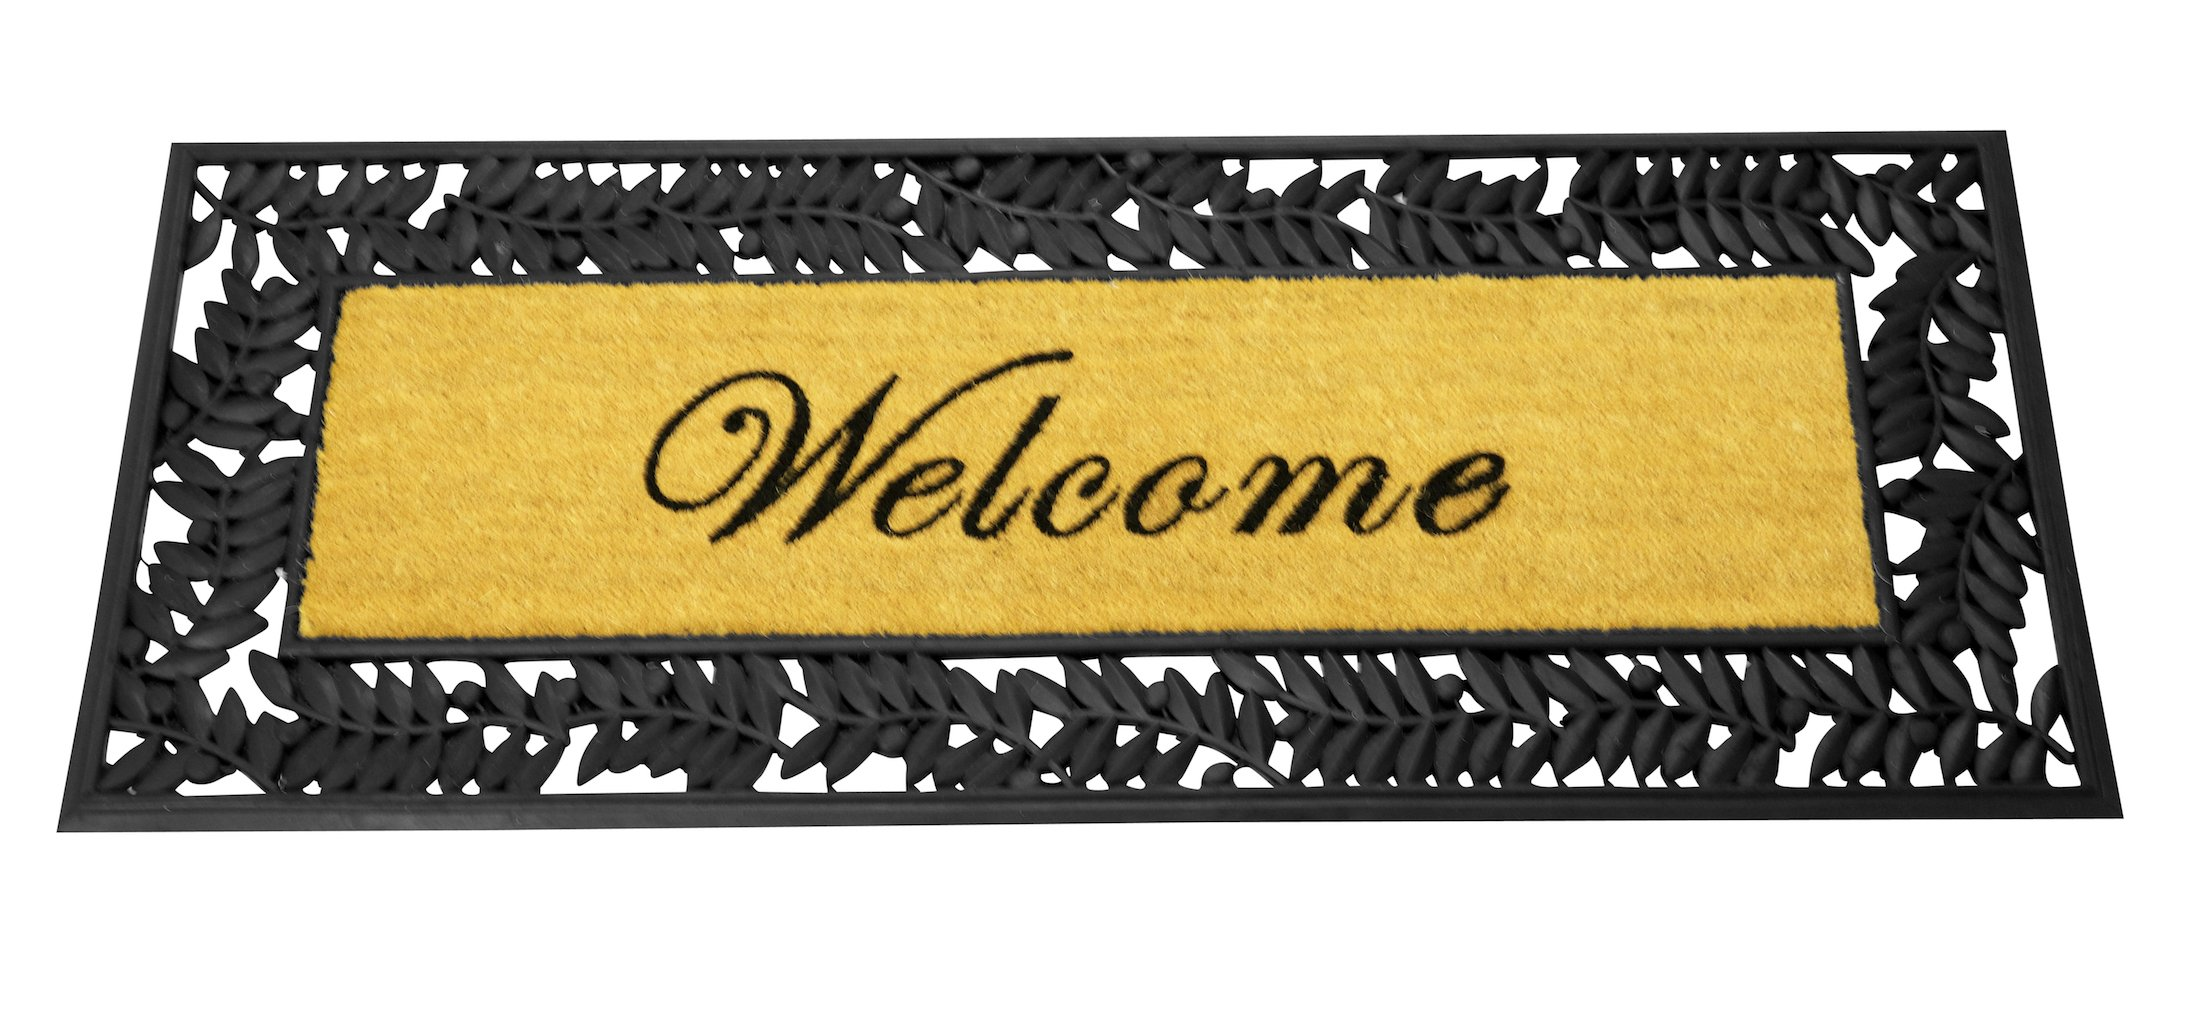 Leaves Welcome Wrought Iron Rubber Mat with Coir 24 x 57 inches